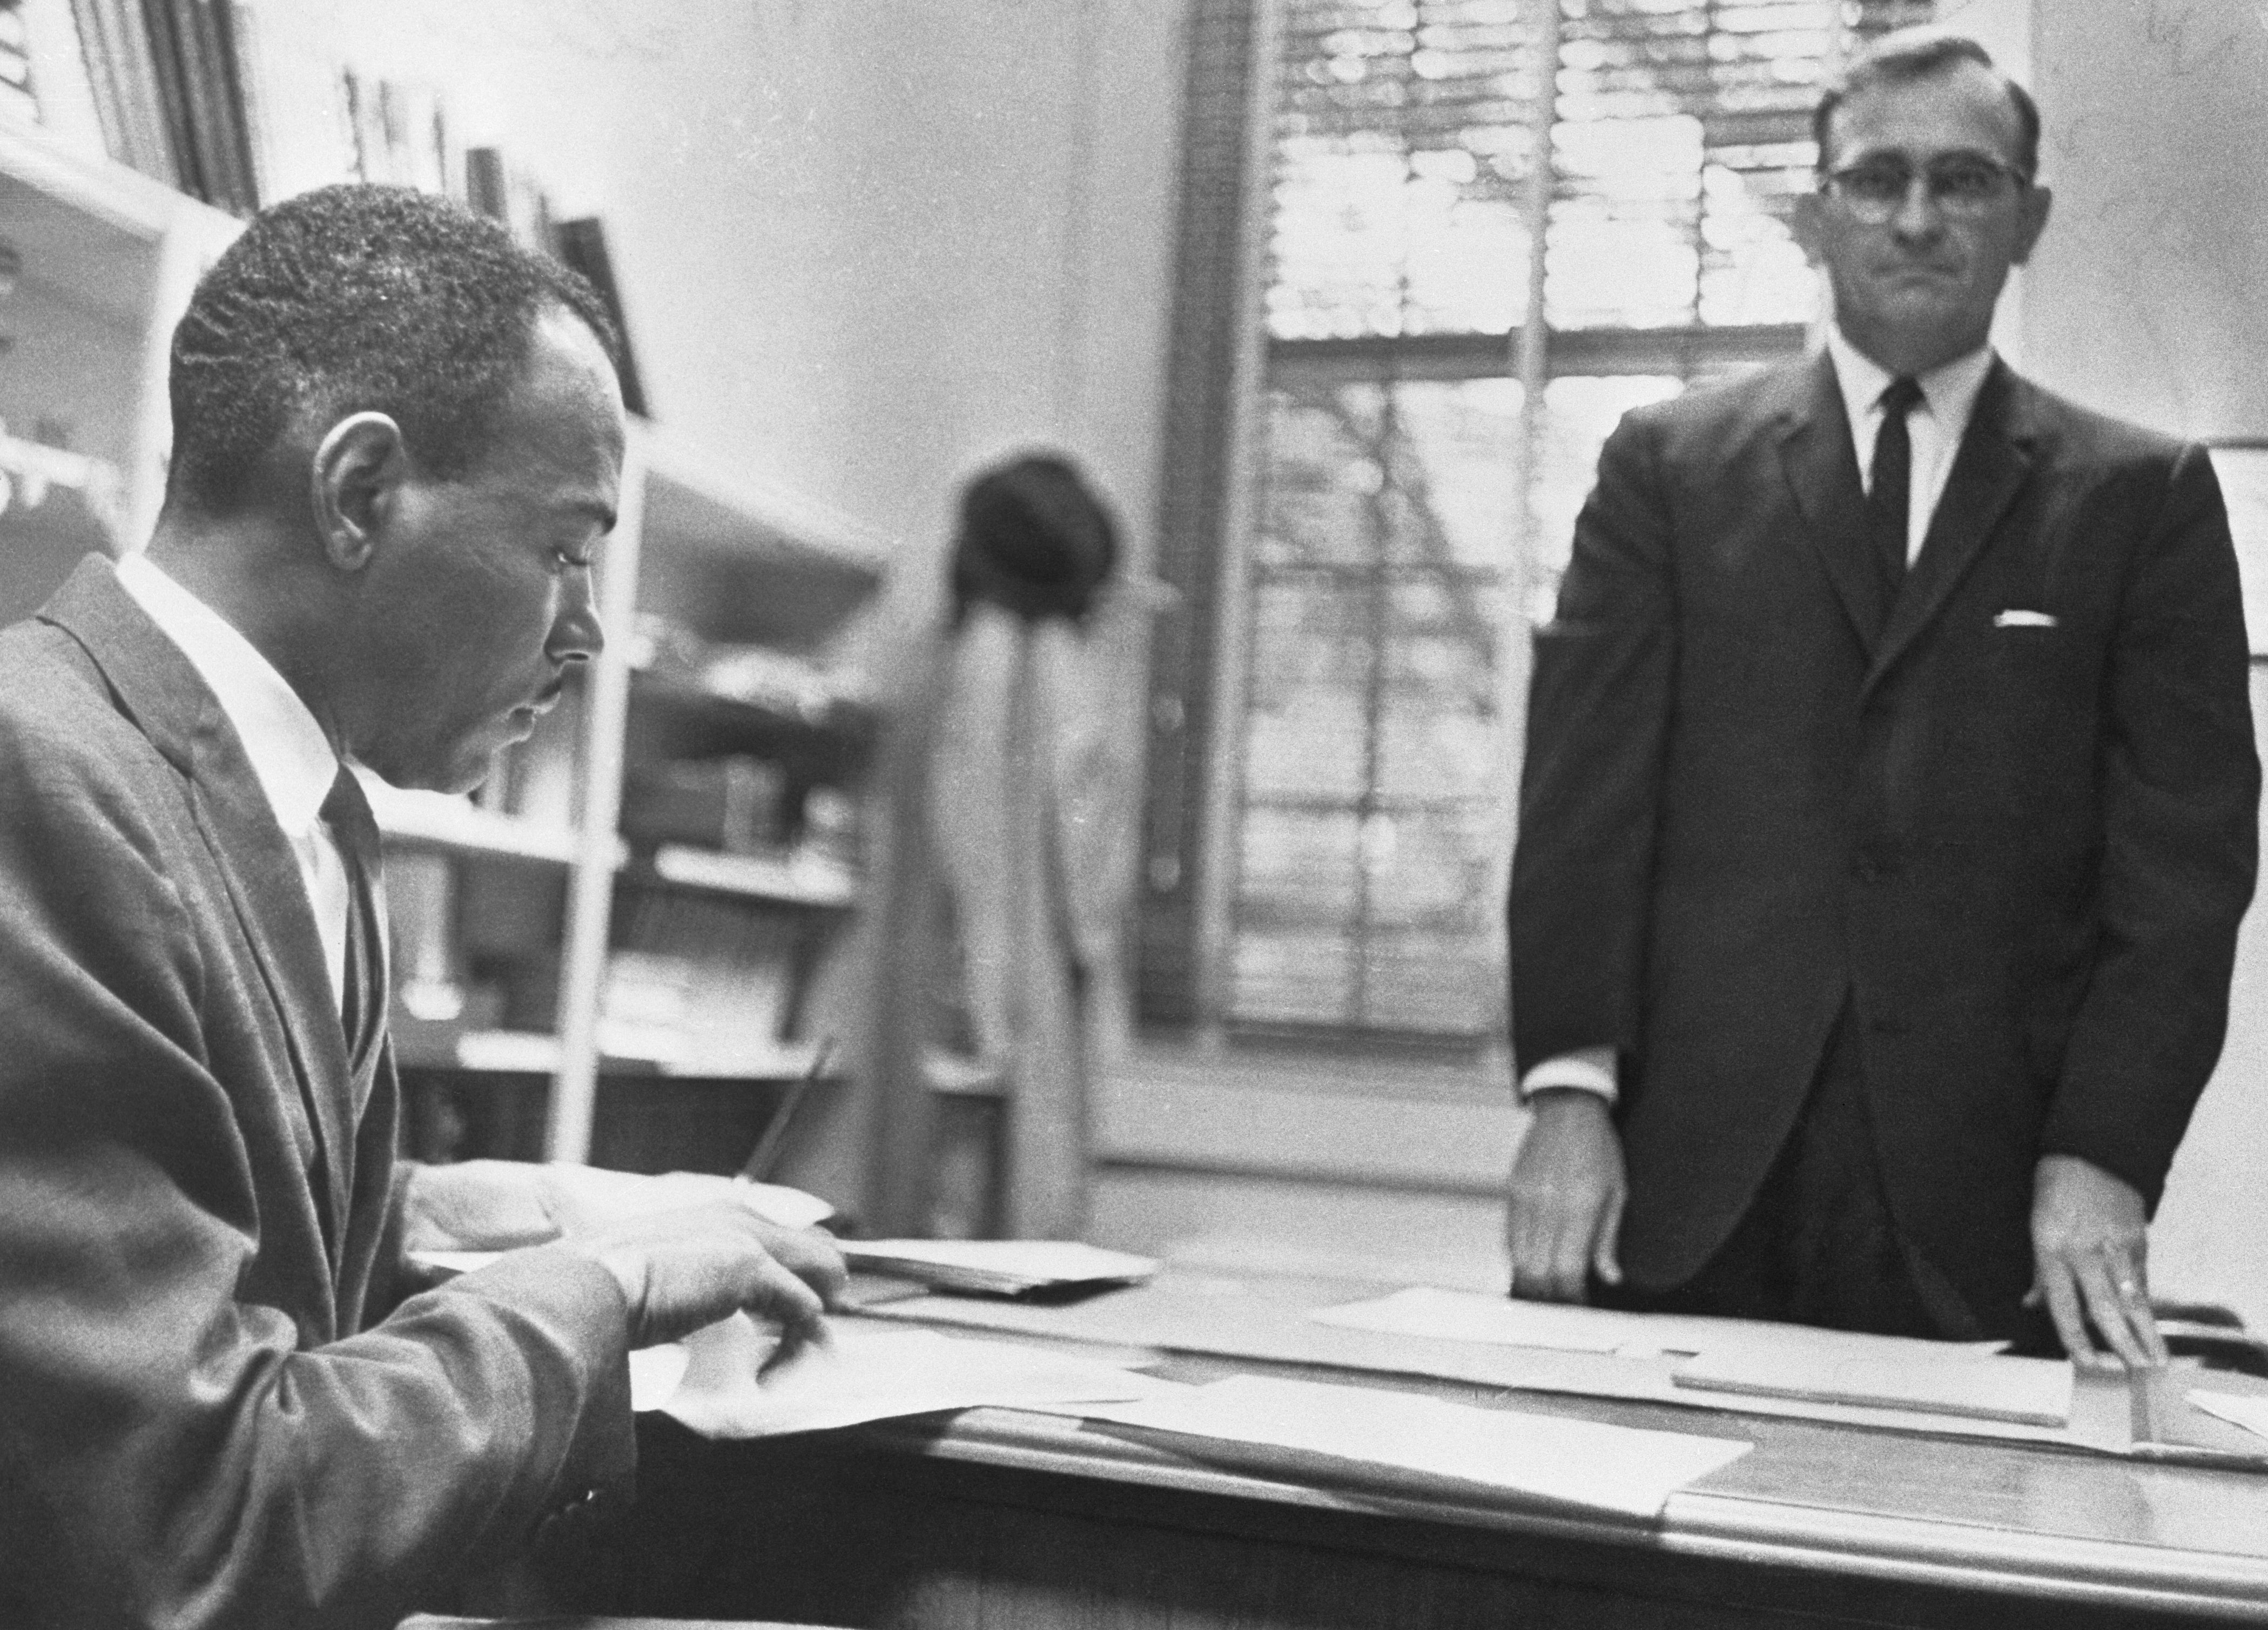 James Meredith signing registration papers at desk while man in glasses stands nearby.